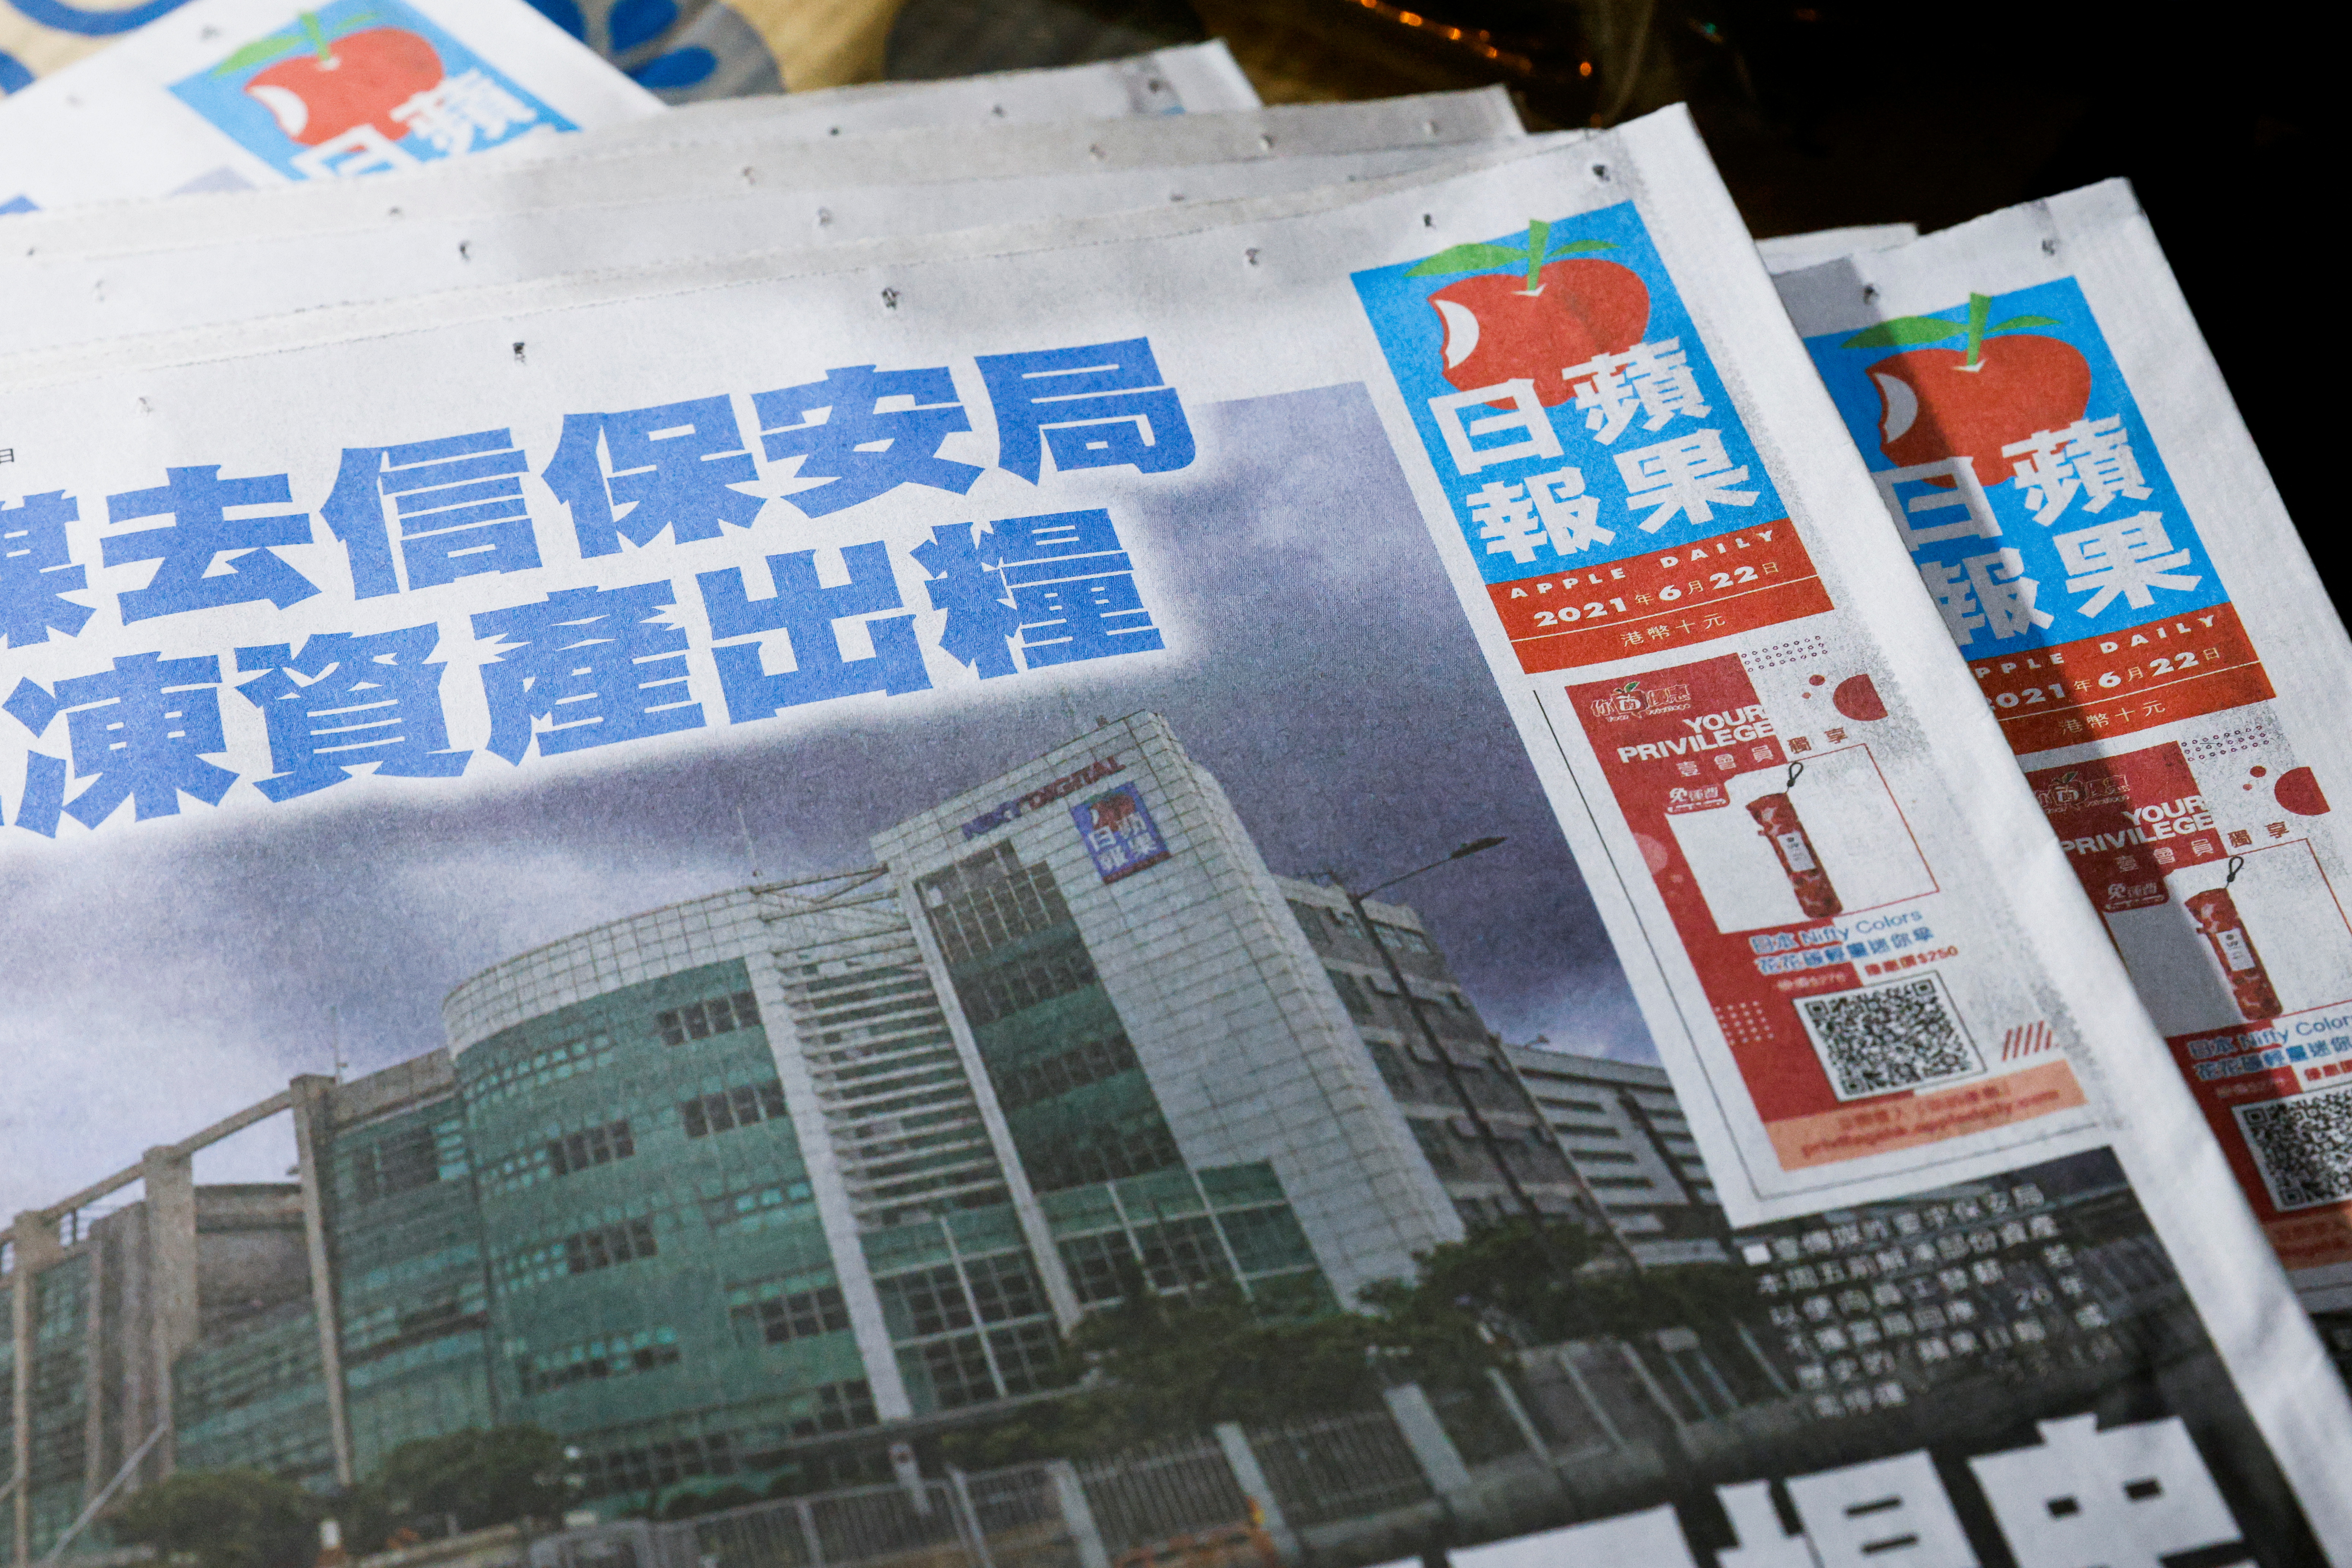 Copies of the Apple Daily newspaper are seen at a newspaper stall after it looked set to close for good by Saturday following police raids and the arrest of executives in Hong Kong, China June 22, 2021. REUTERS/Tyrone Siu